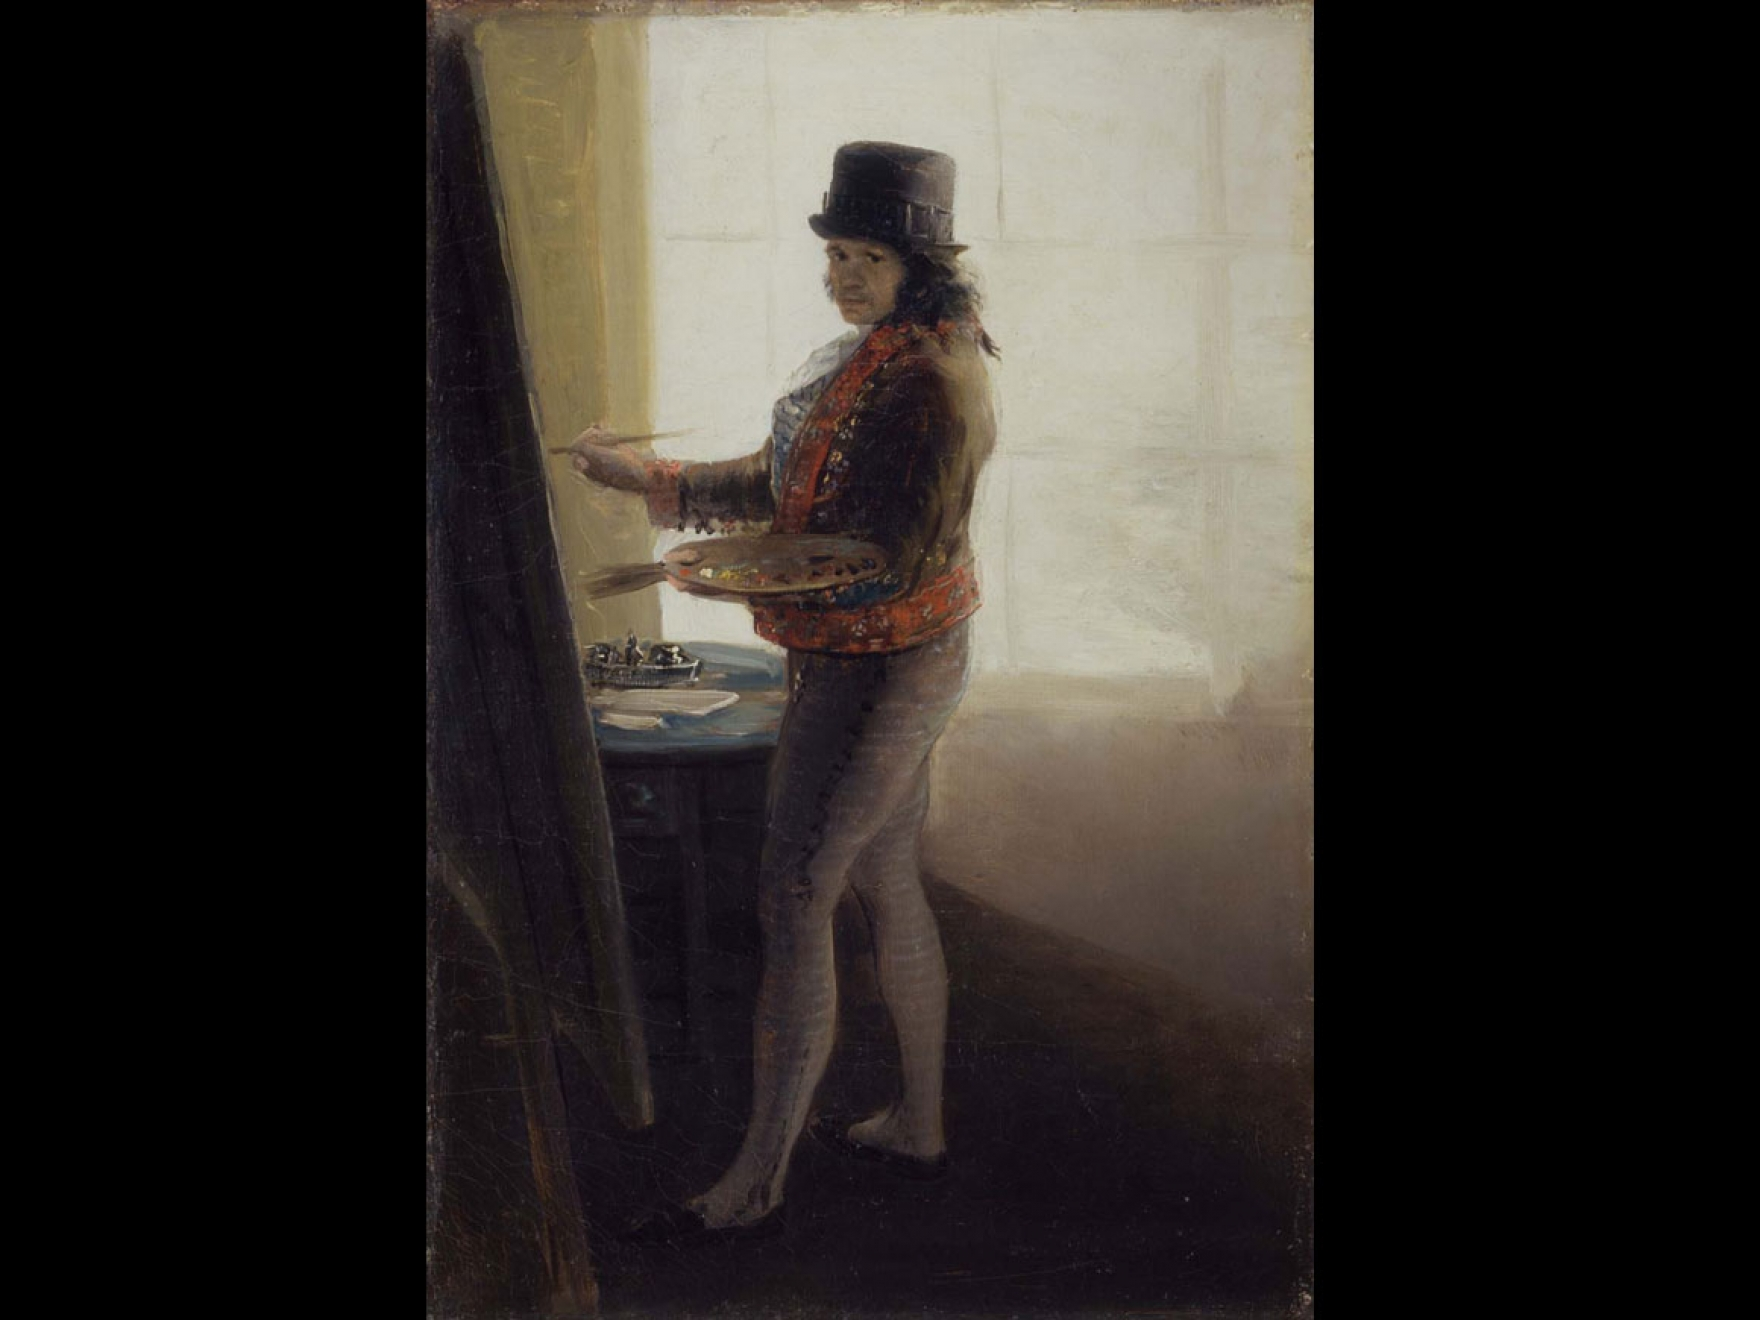 A self-portrait of Goya while he is painting this picture